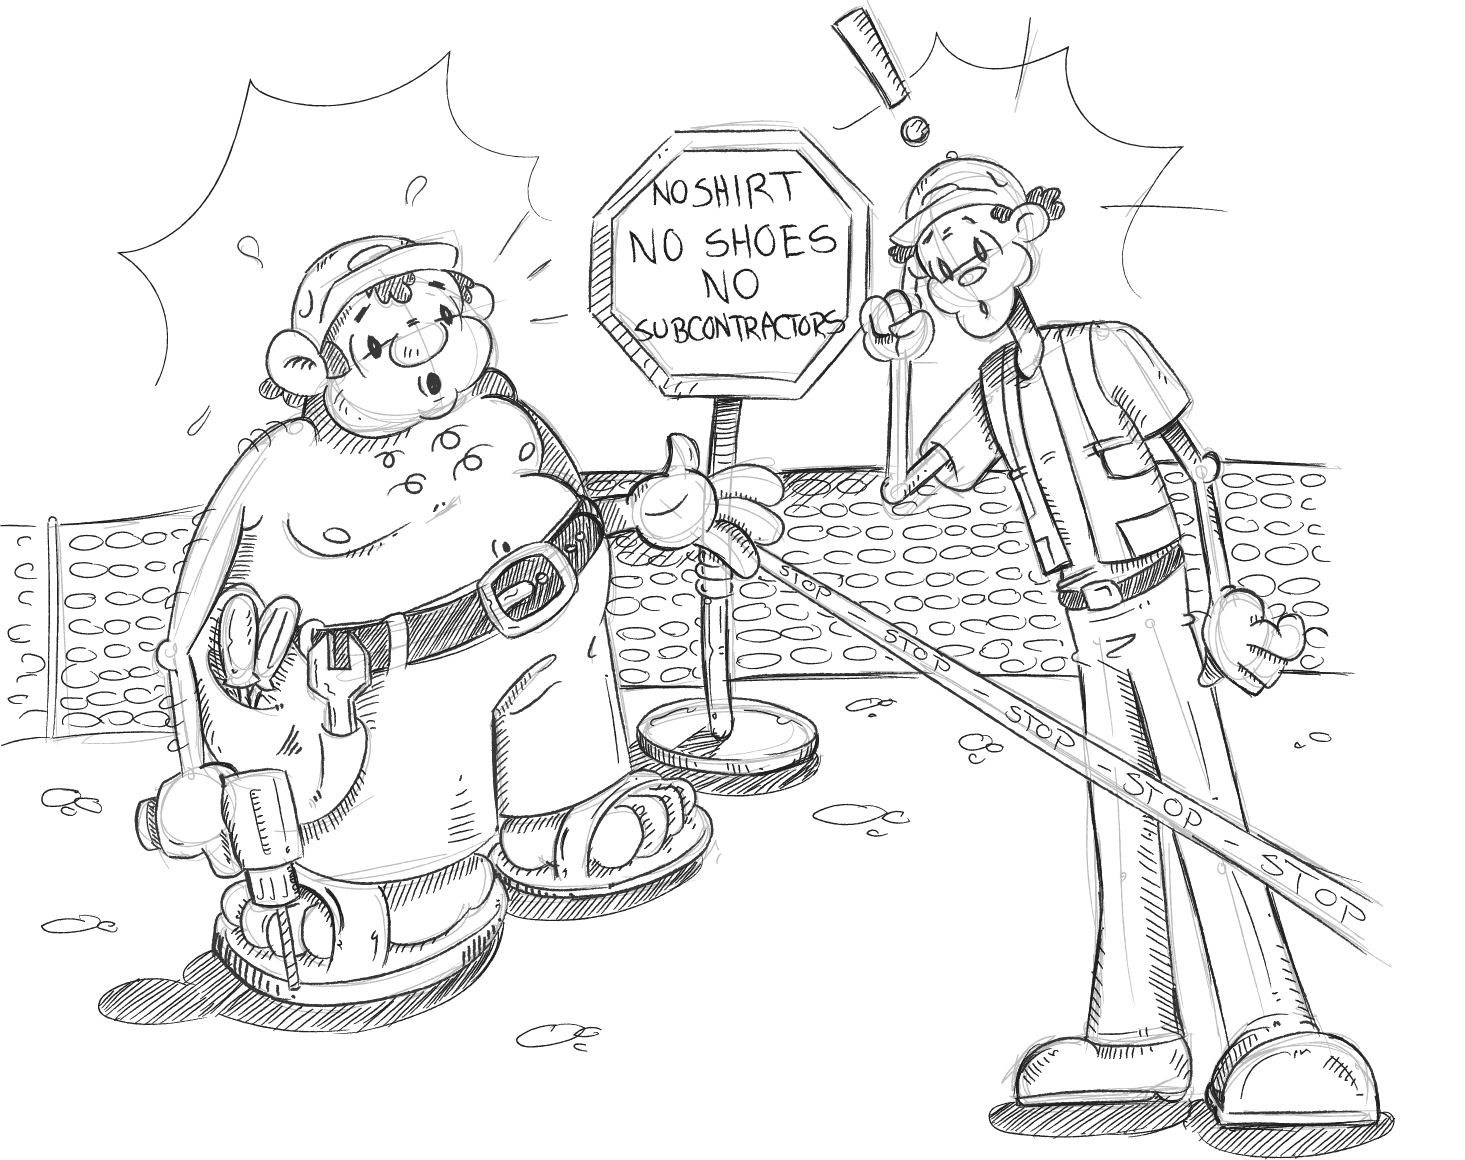 Cartoon of man being denied worksite access due to lack of PPE